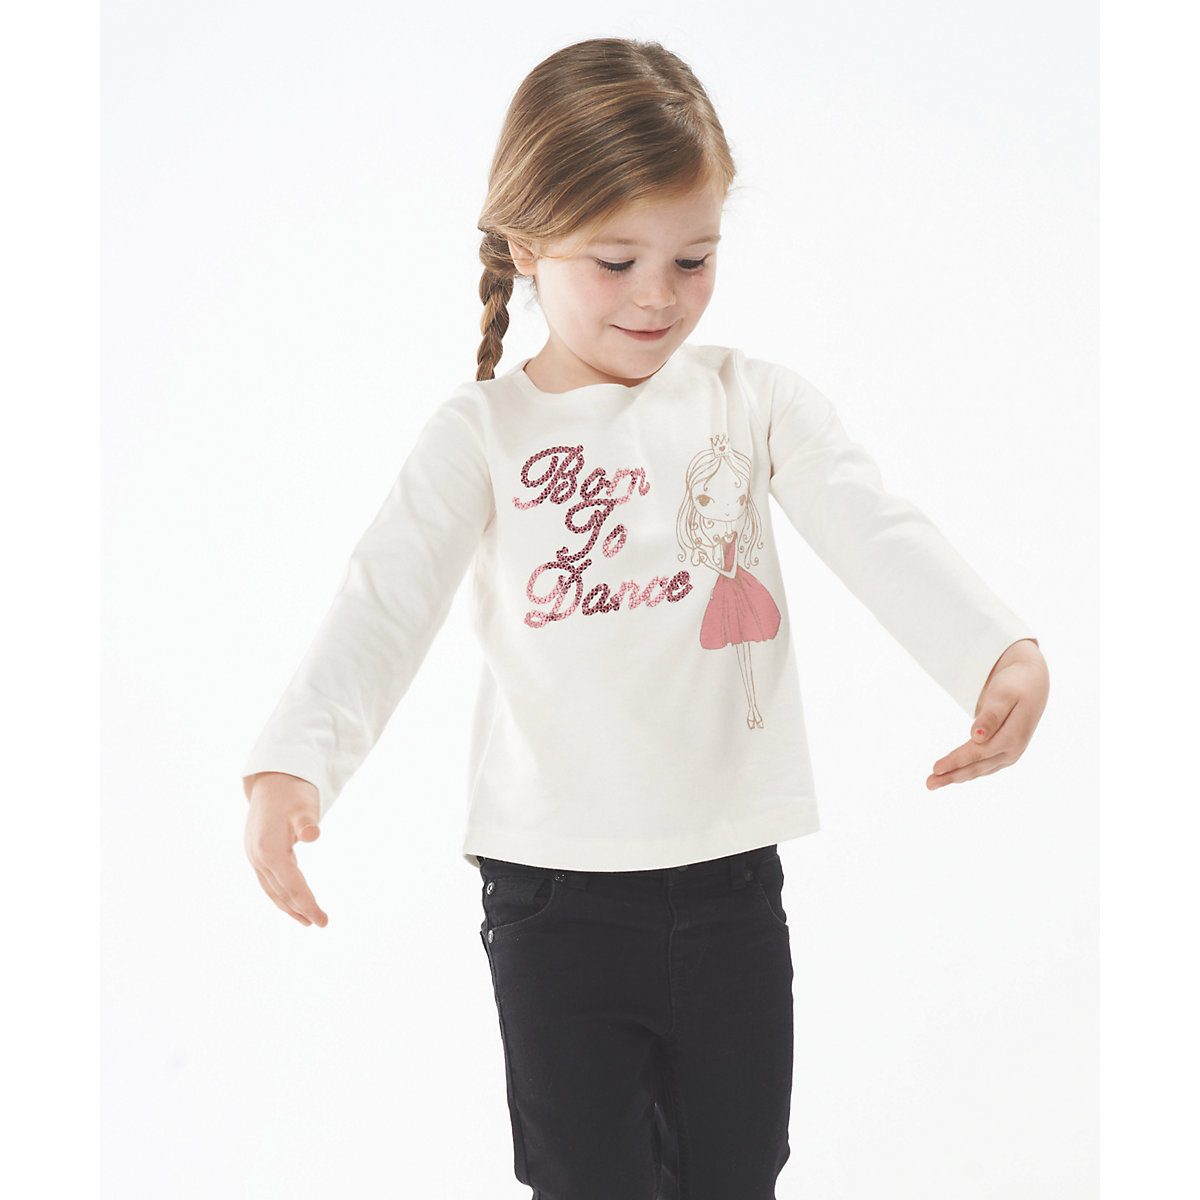 Mothercare Born to Dance T-Shirt - Dance Gifts